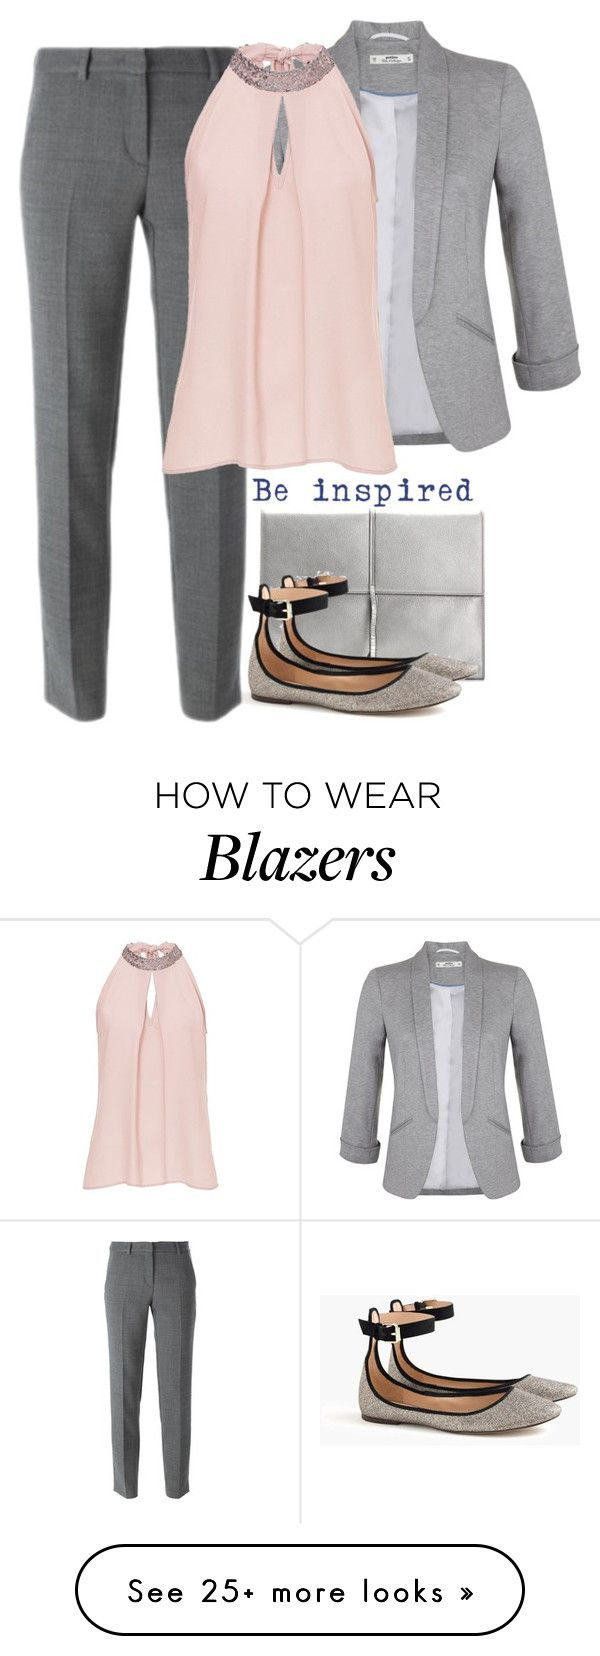 """Casual Office Style"" by cloudybooks on Polyvore featuring Ivanka Trump, J.Crew, DKNY, Miss Selfridge and Vera Mont"